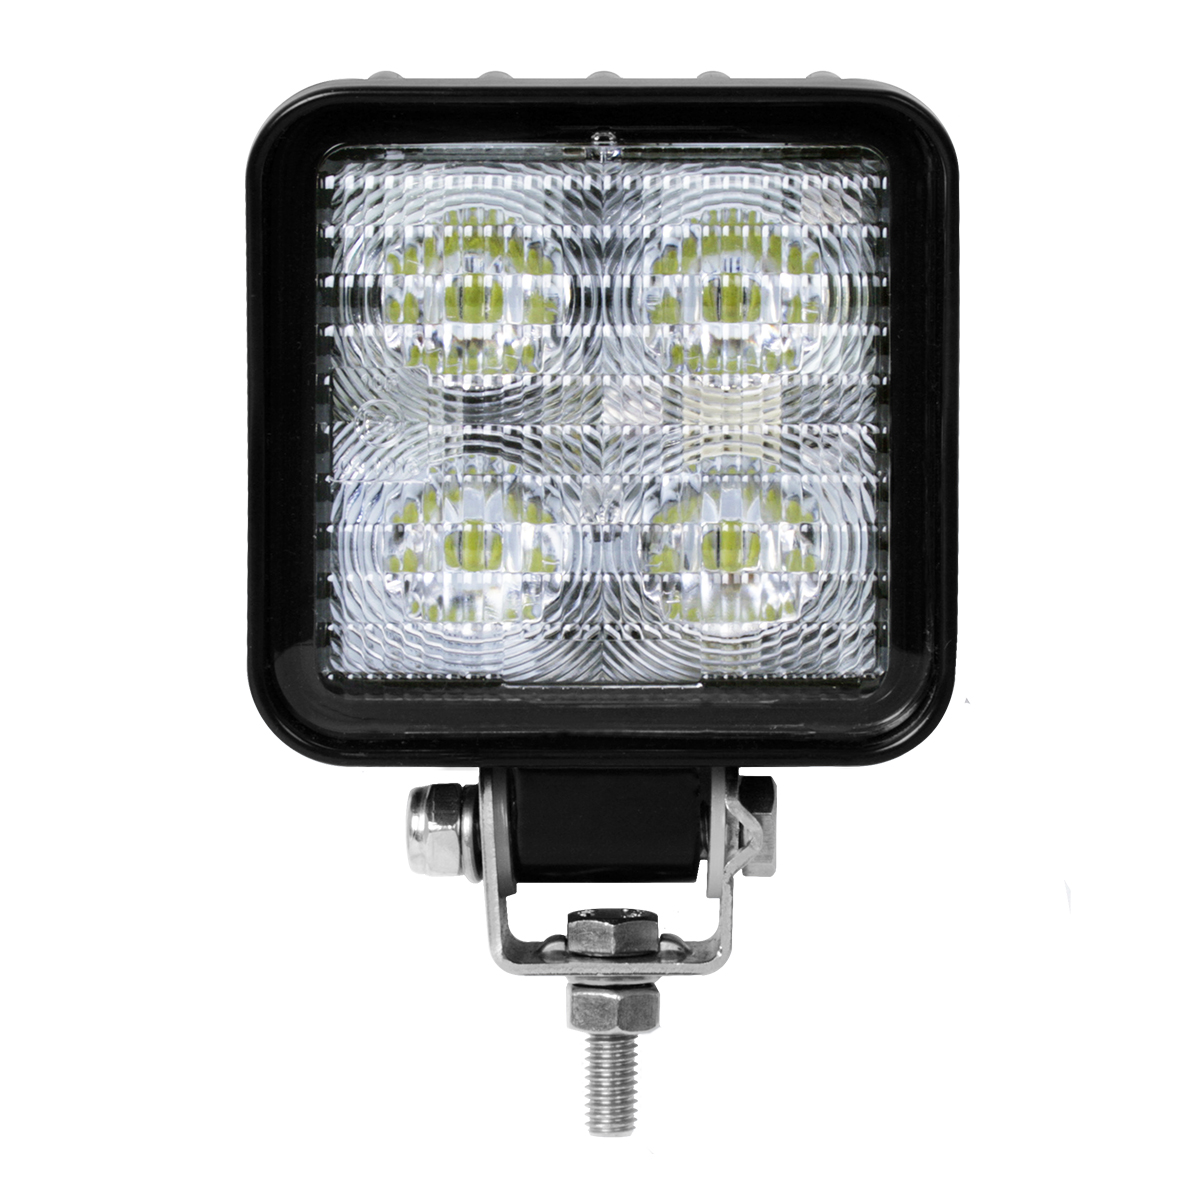 76358 Small High Power LED Flood Light